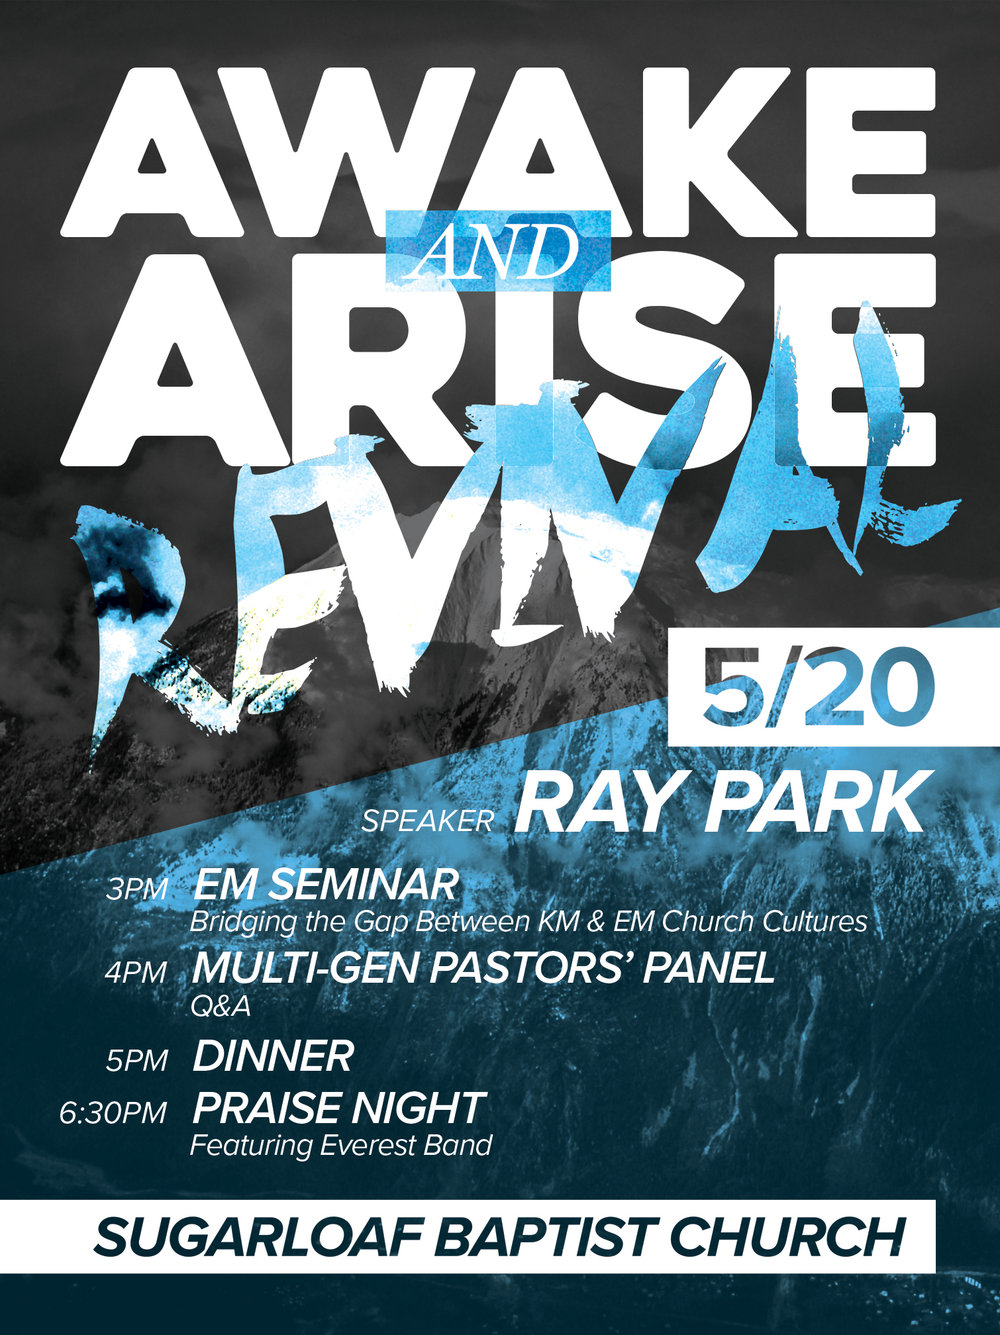 Awake & Arise Revival - To promote a conference for Servants Network.